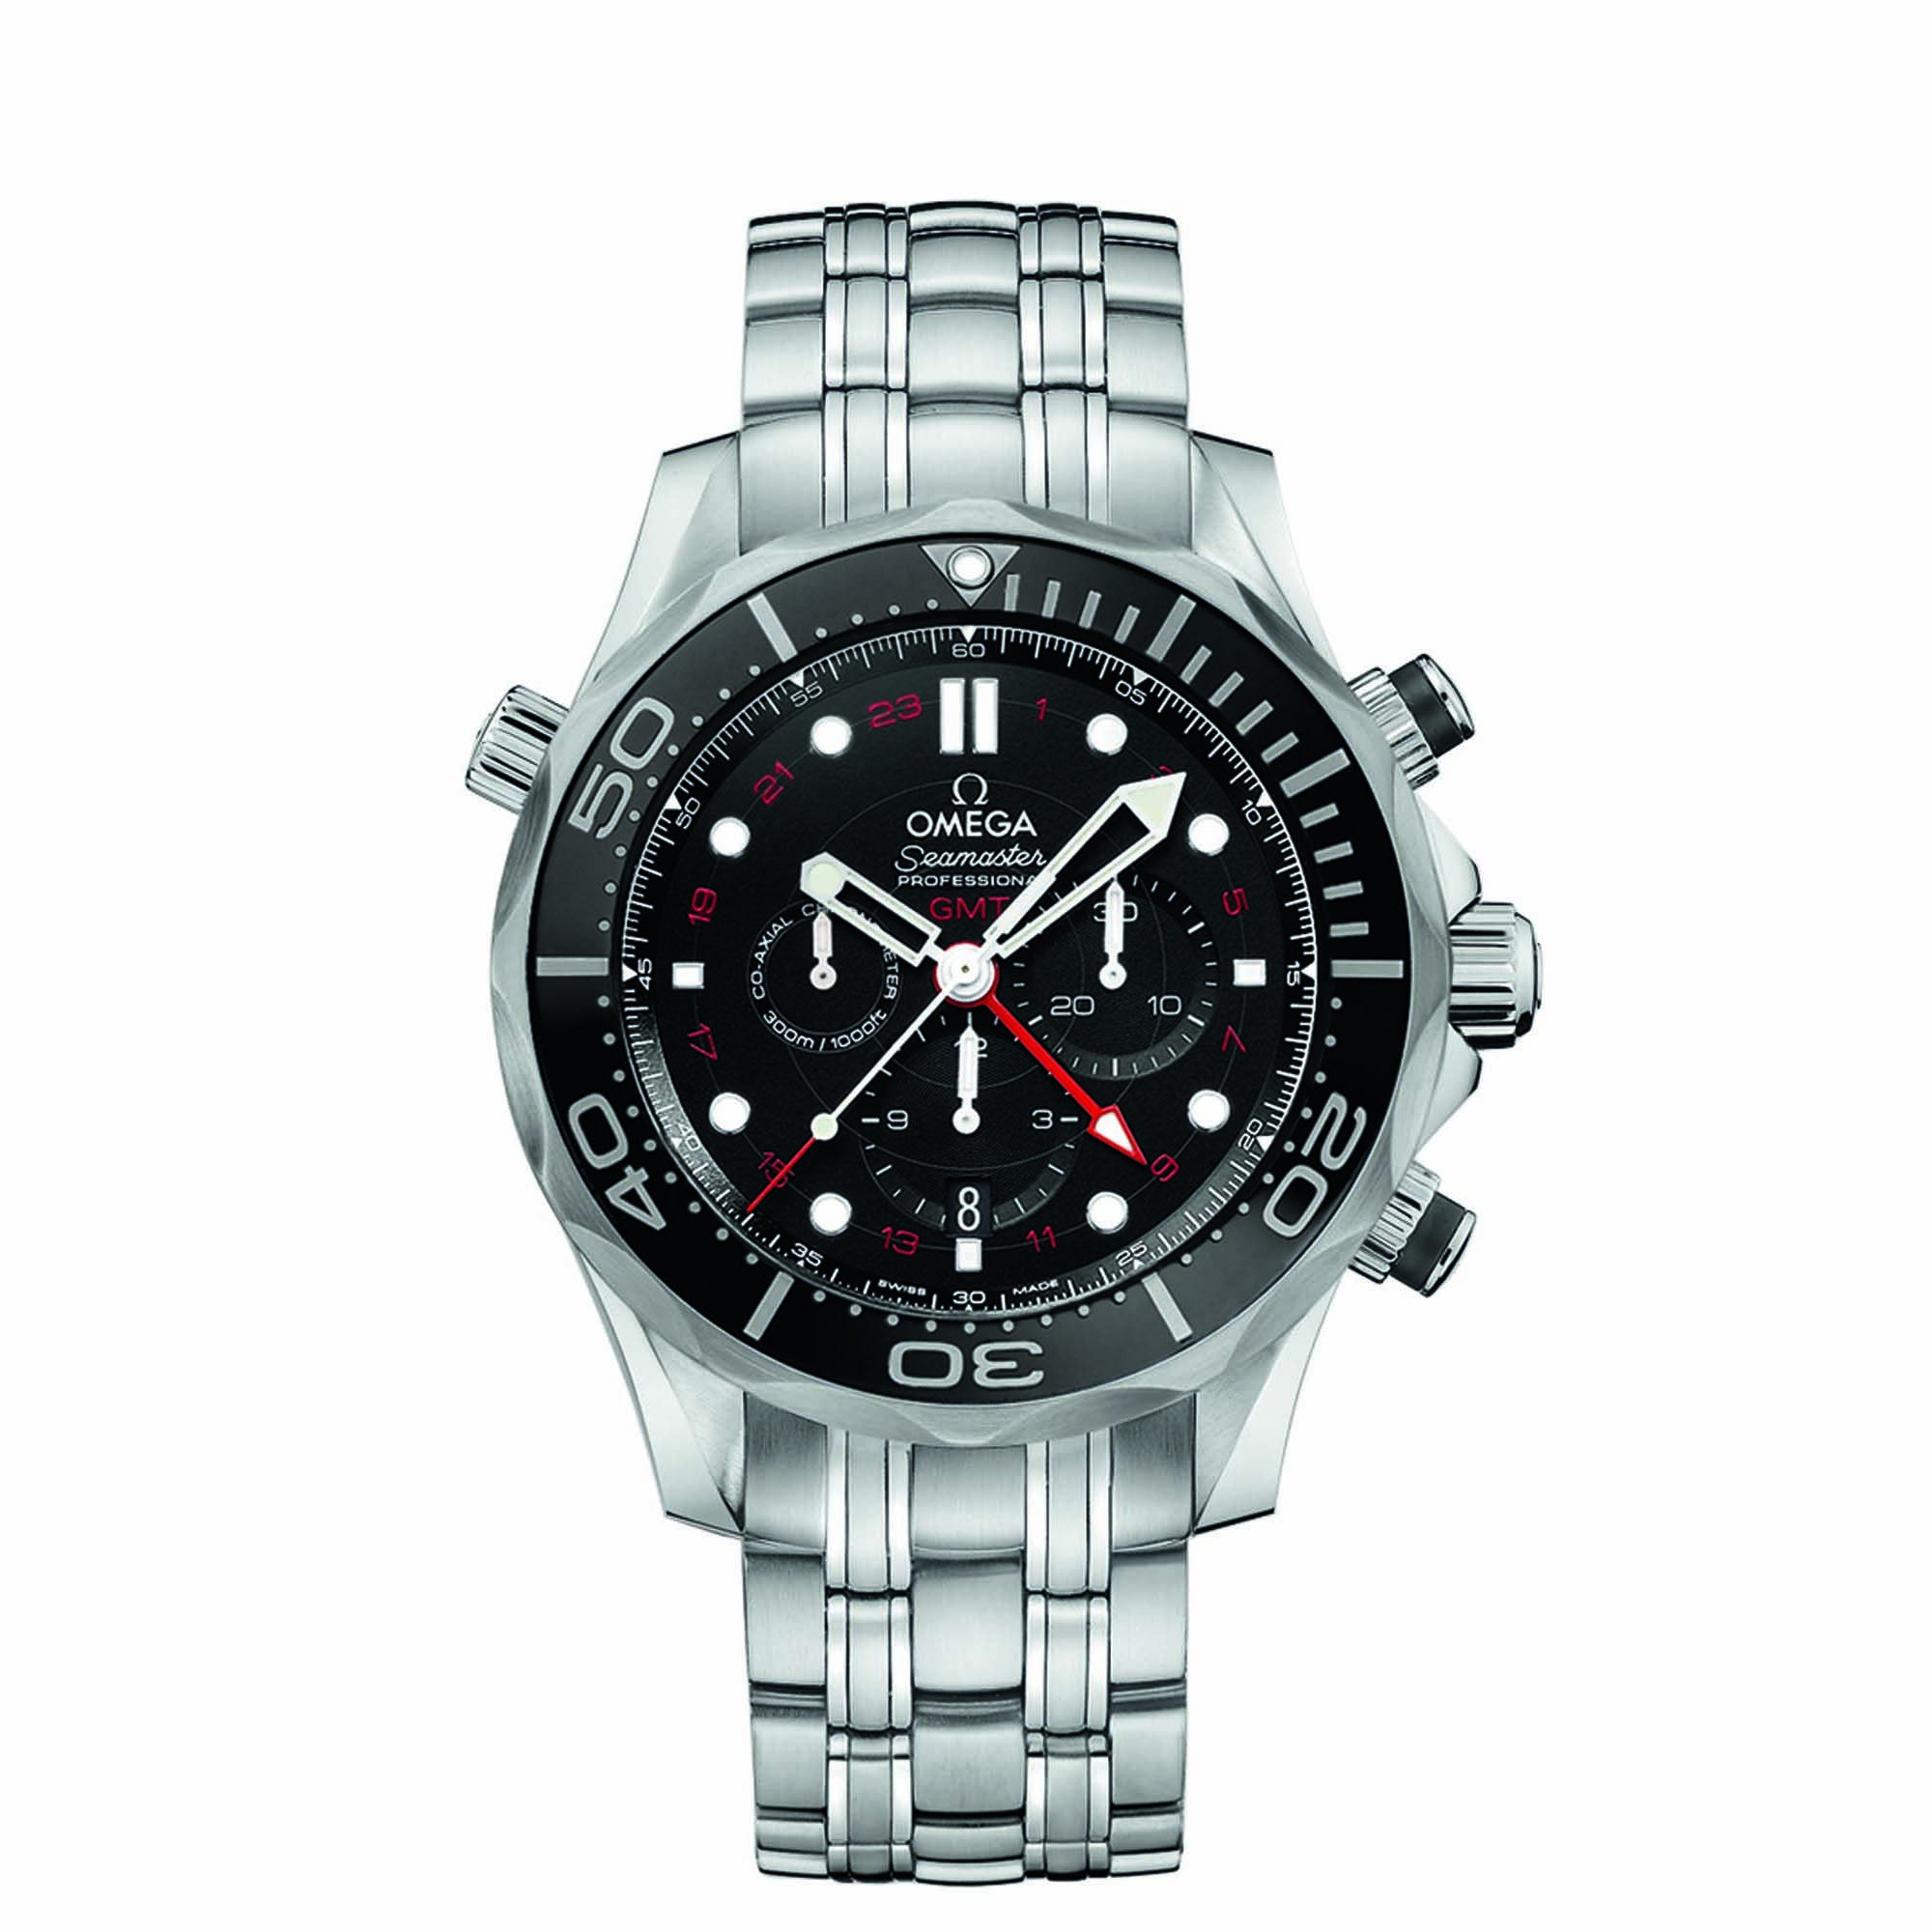 Diver 300 M Co-Axial GMT Chronograph 44 mm